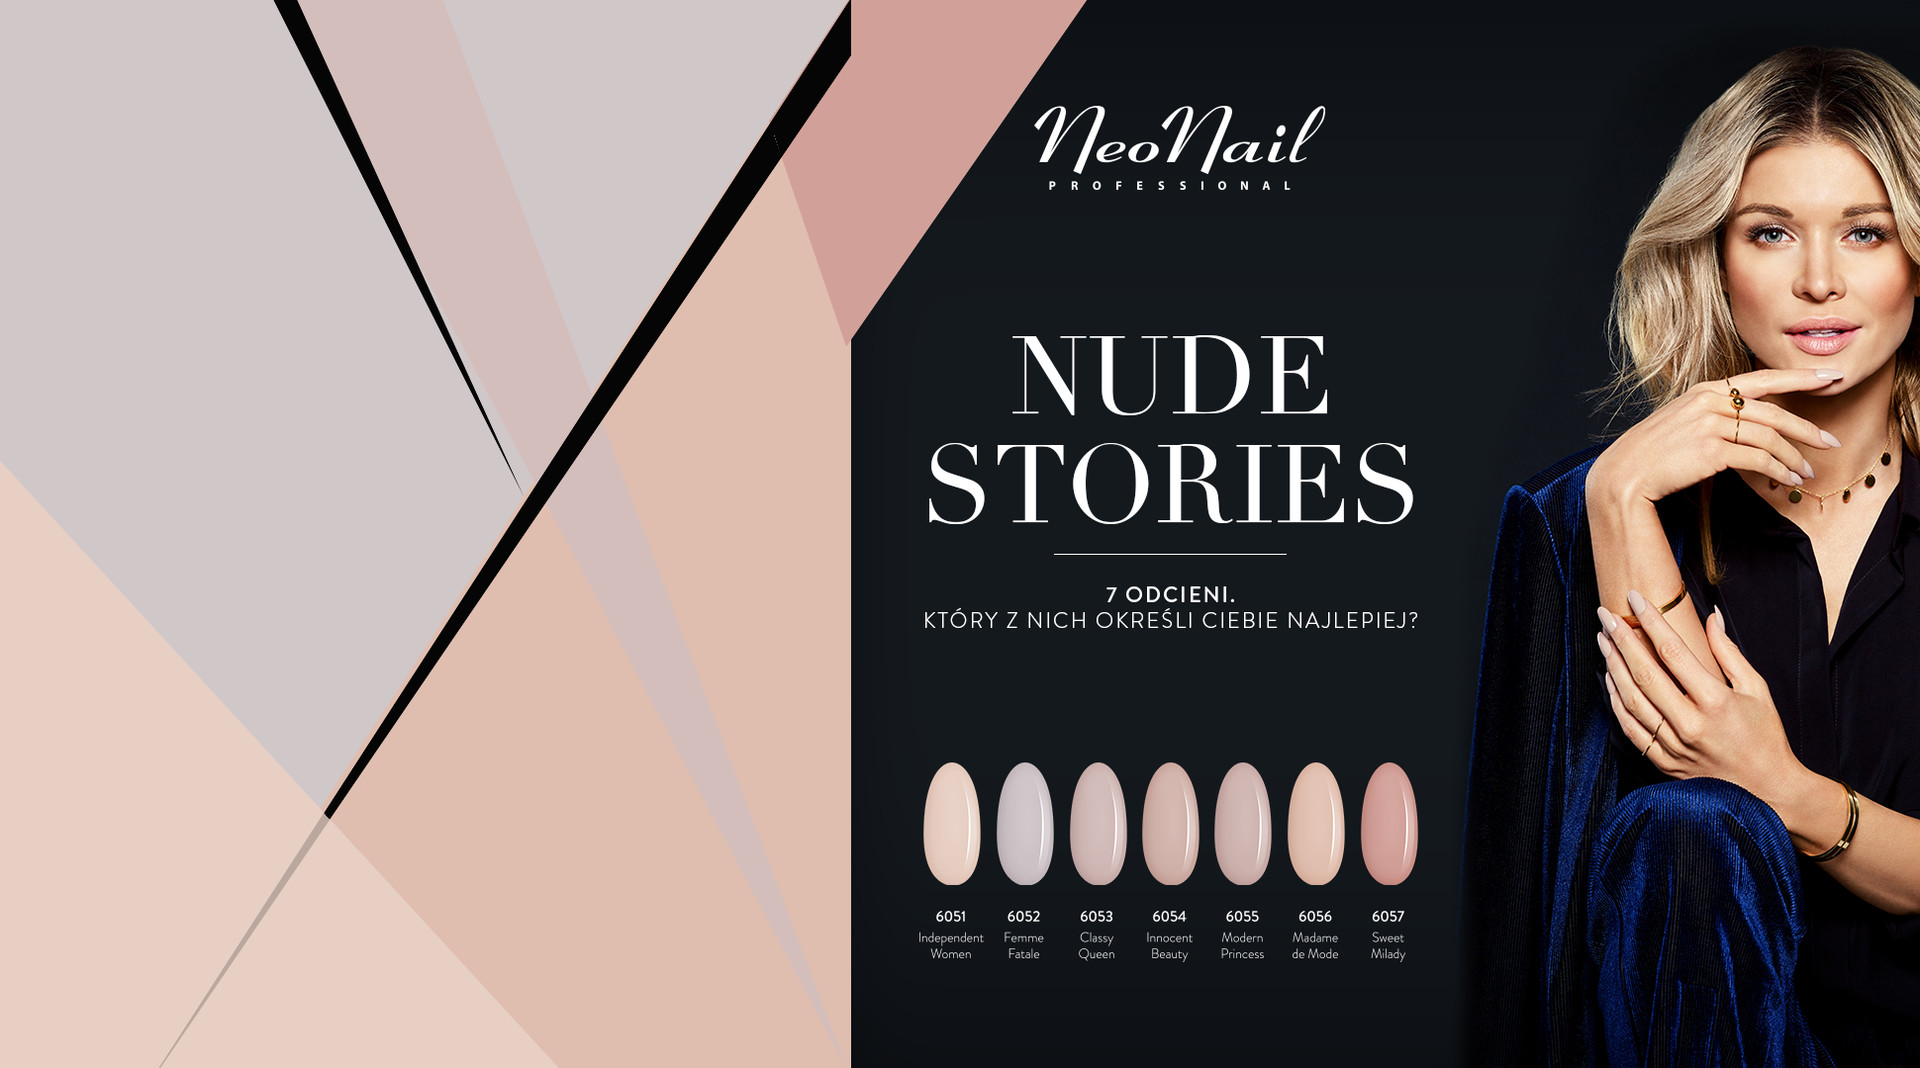 NeoNail Nude Stories Delicious by Joanna Krupa